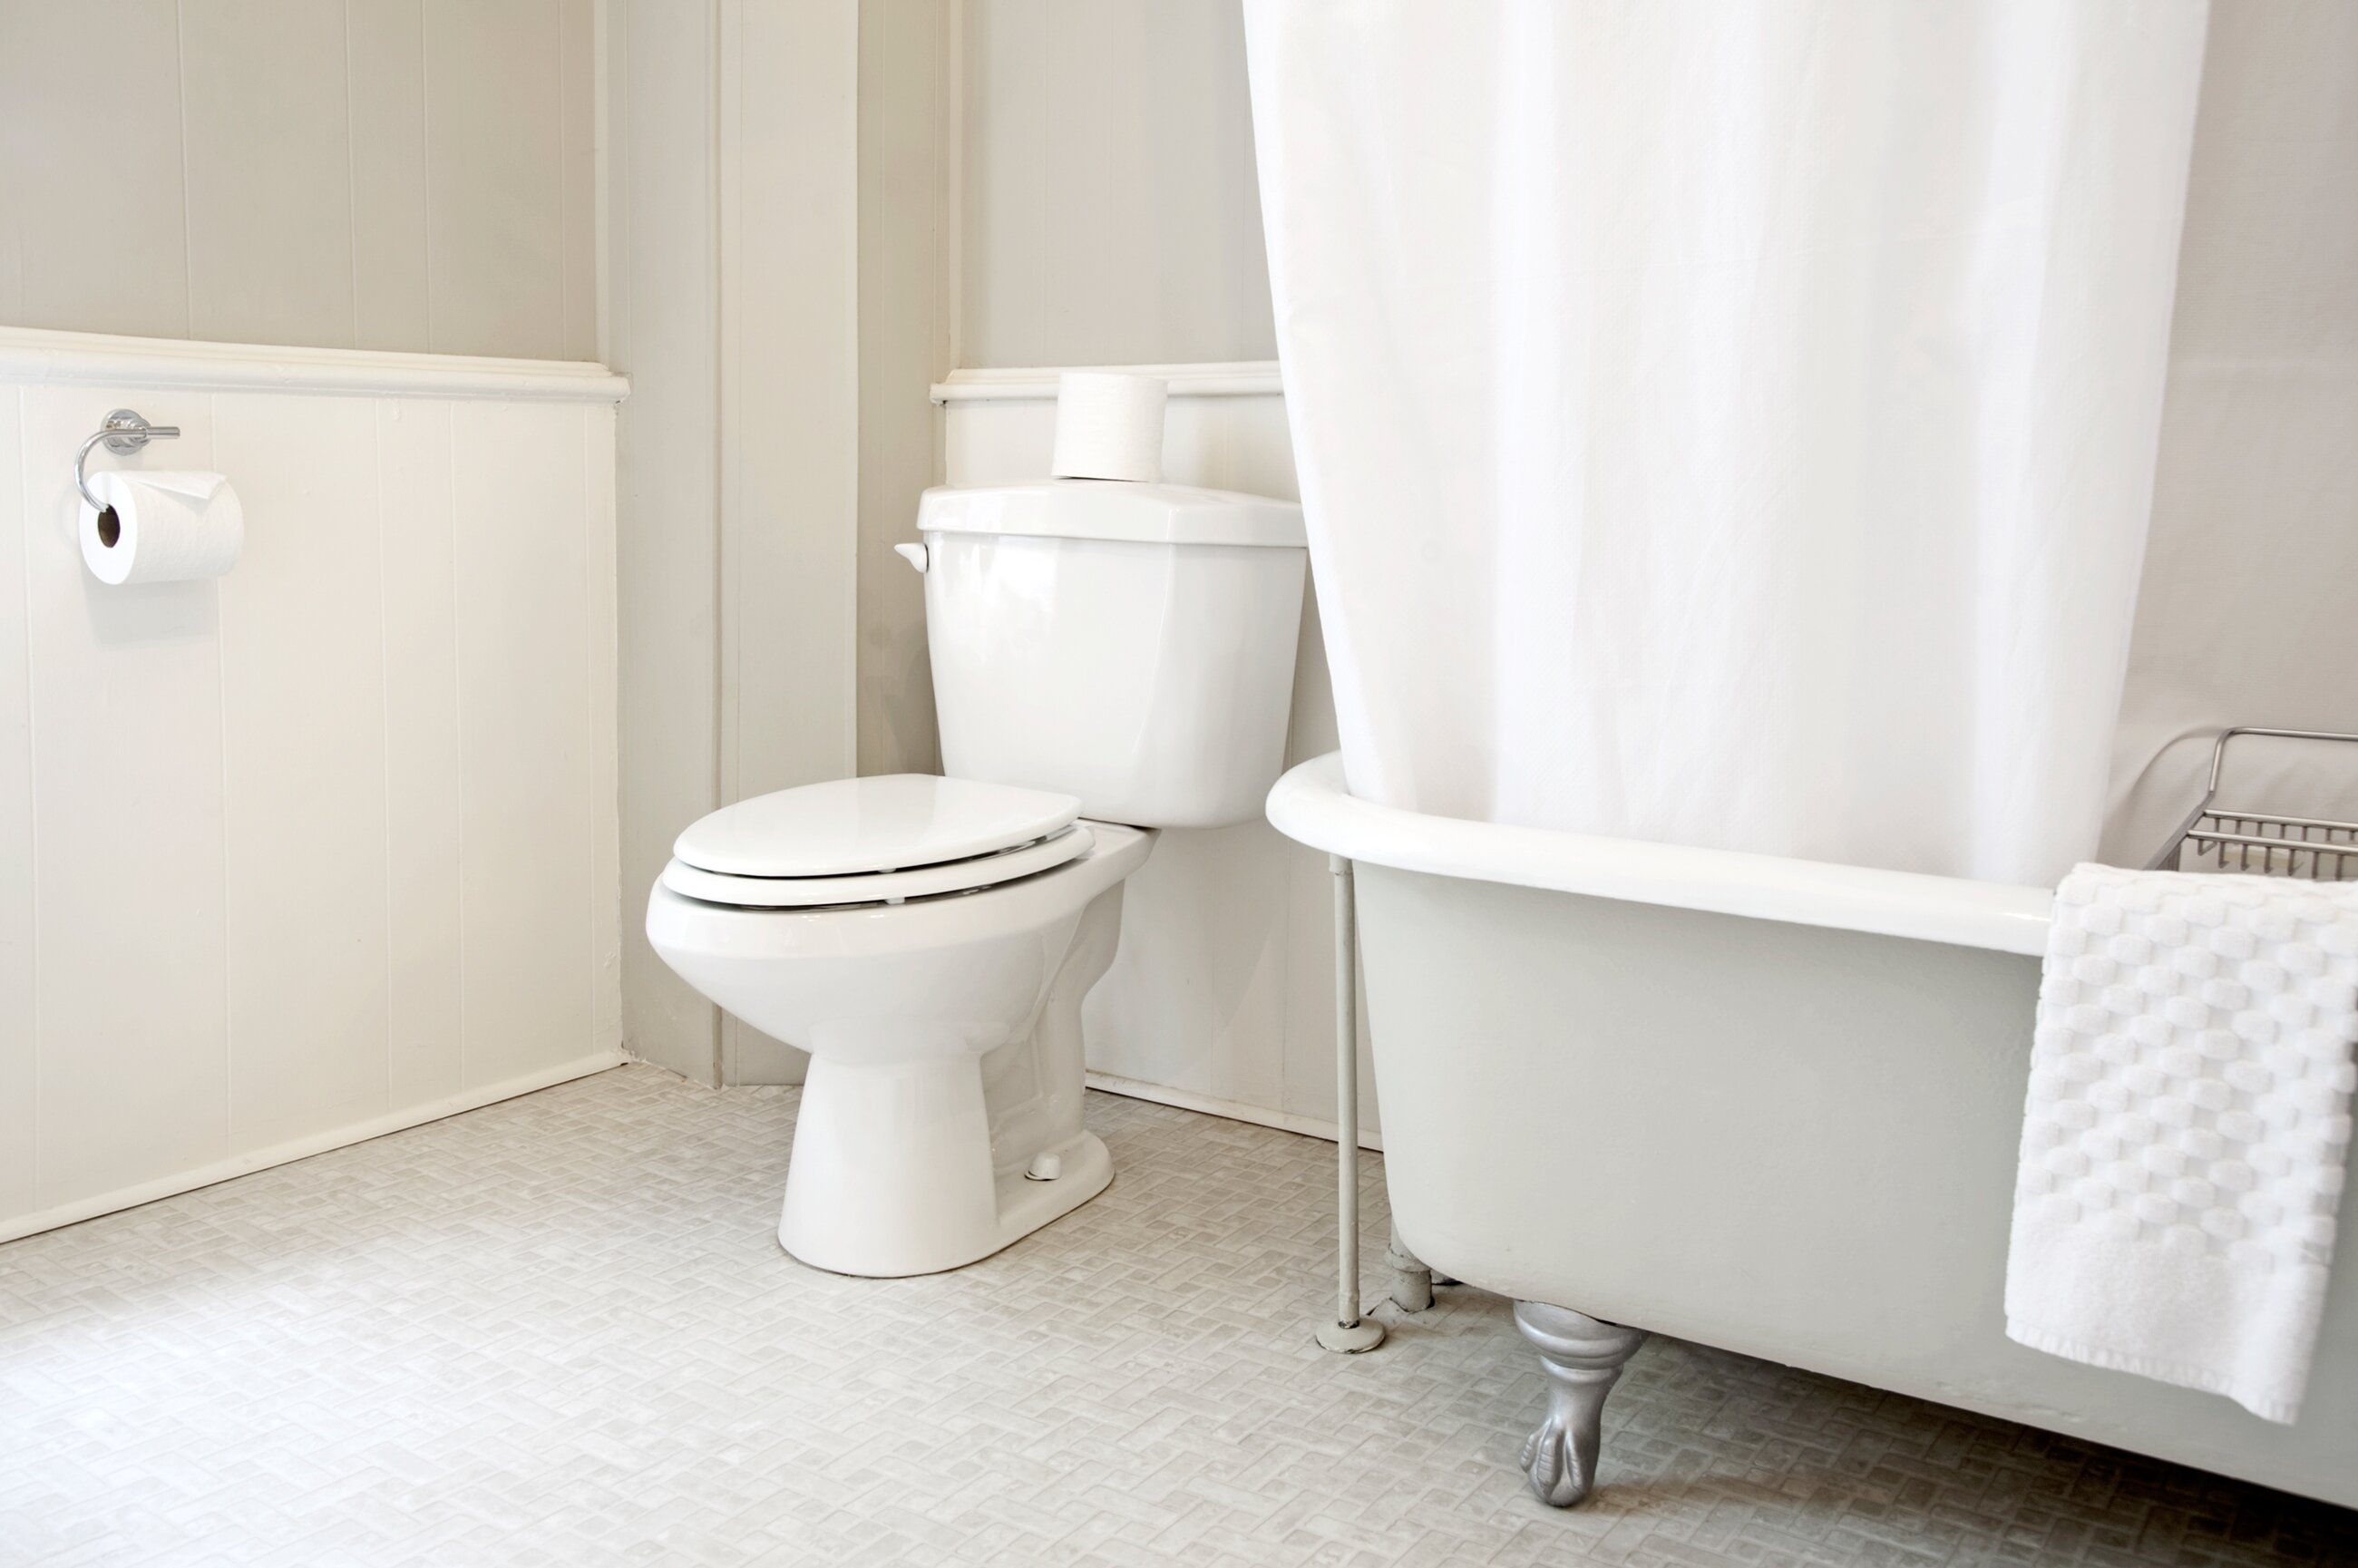 Swell The Ultimate Guide To Cleaning A Toilet Martha Stewart Onthecornerstone Fun Painted Chair Ideas Images Onthecornerstoneorg